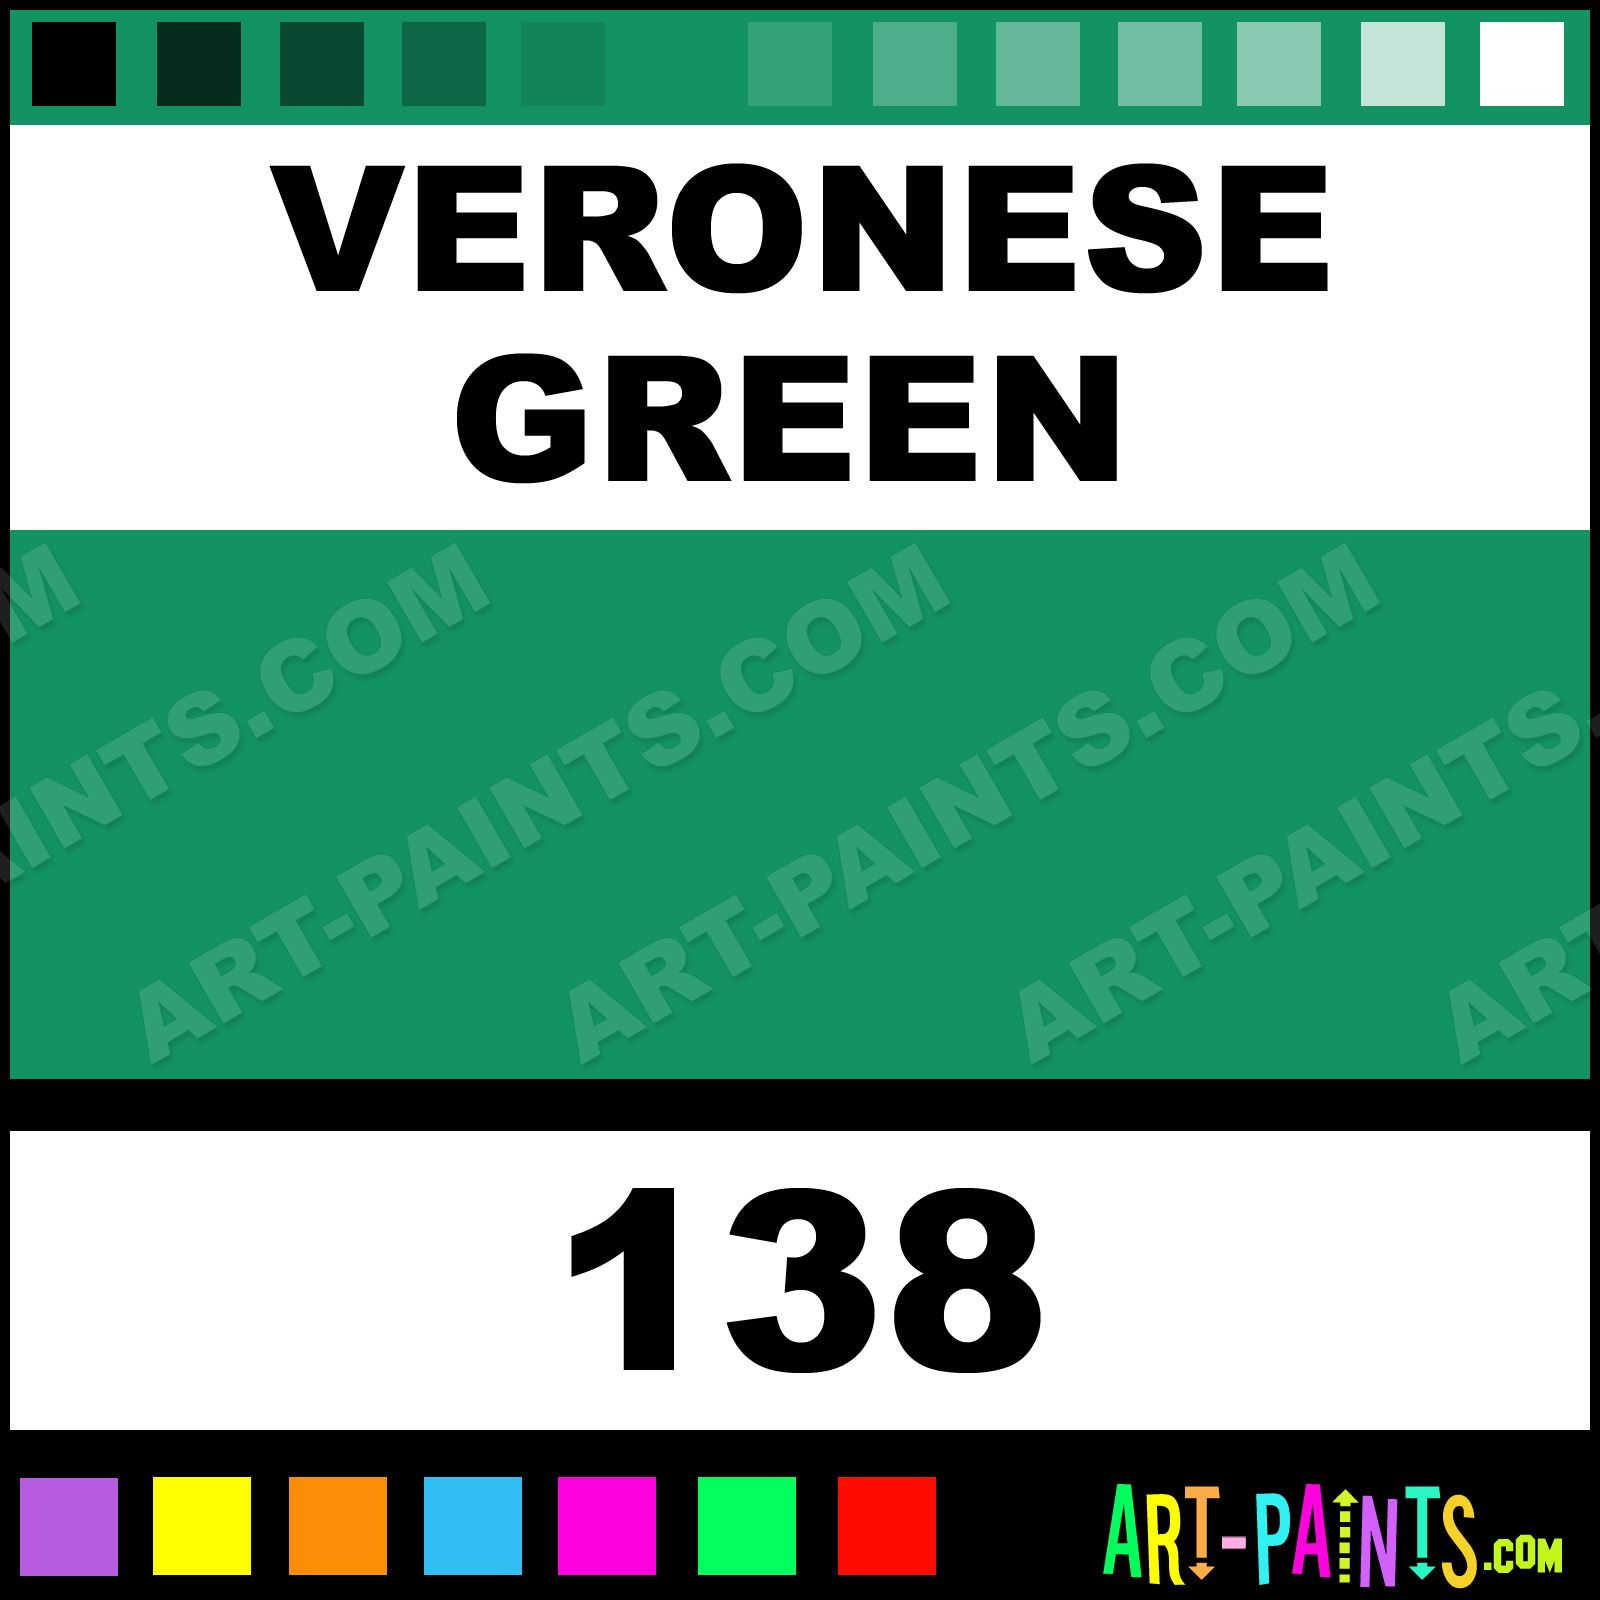 Veronese Green Think Of Monet S Giverny Grey Artist Green Art